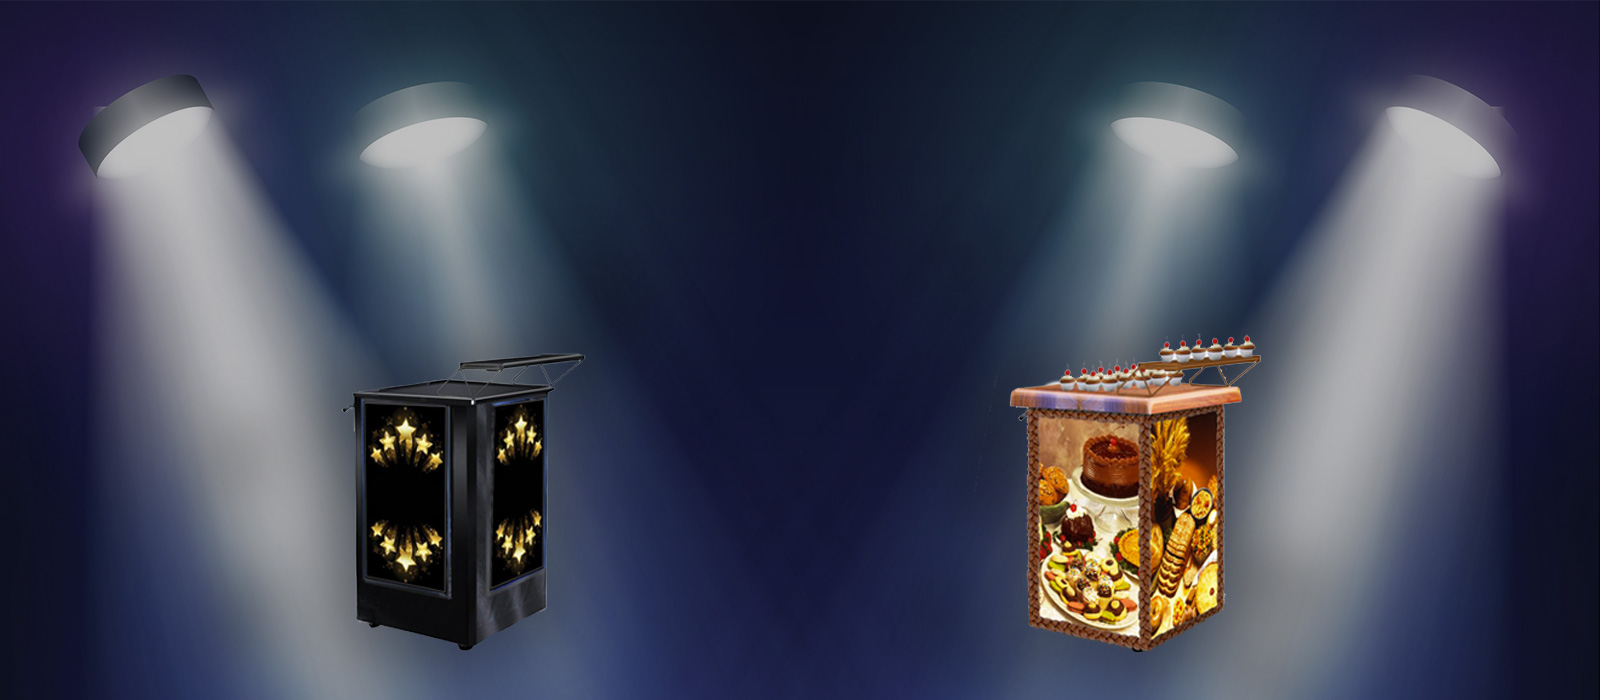 Slider background image with 2 bakery carts under a spotlight